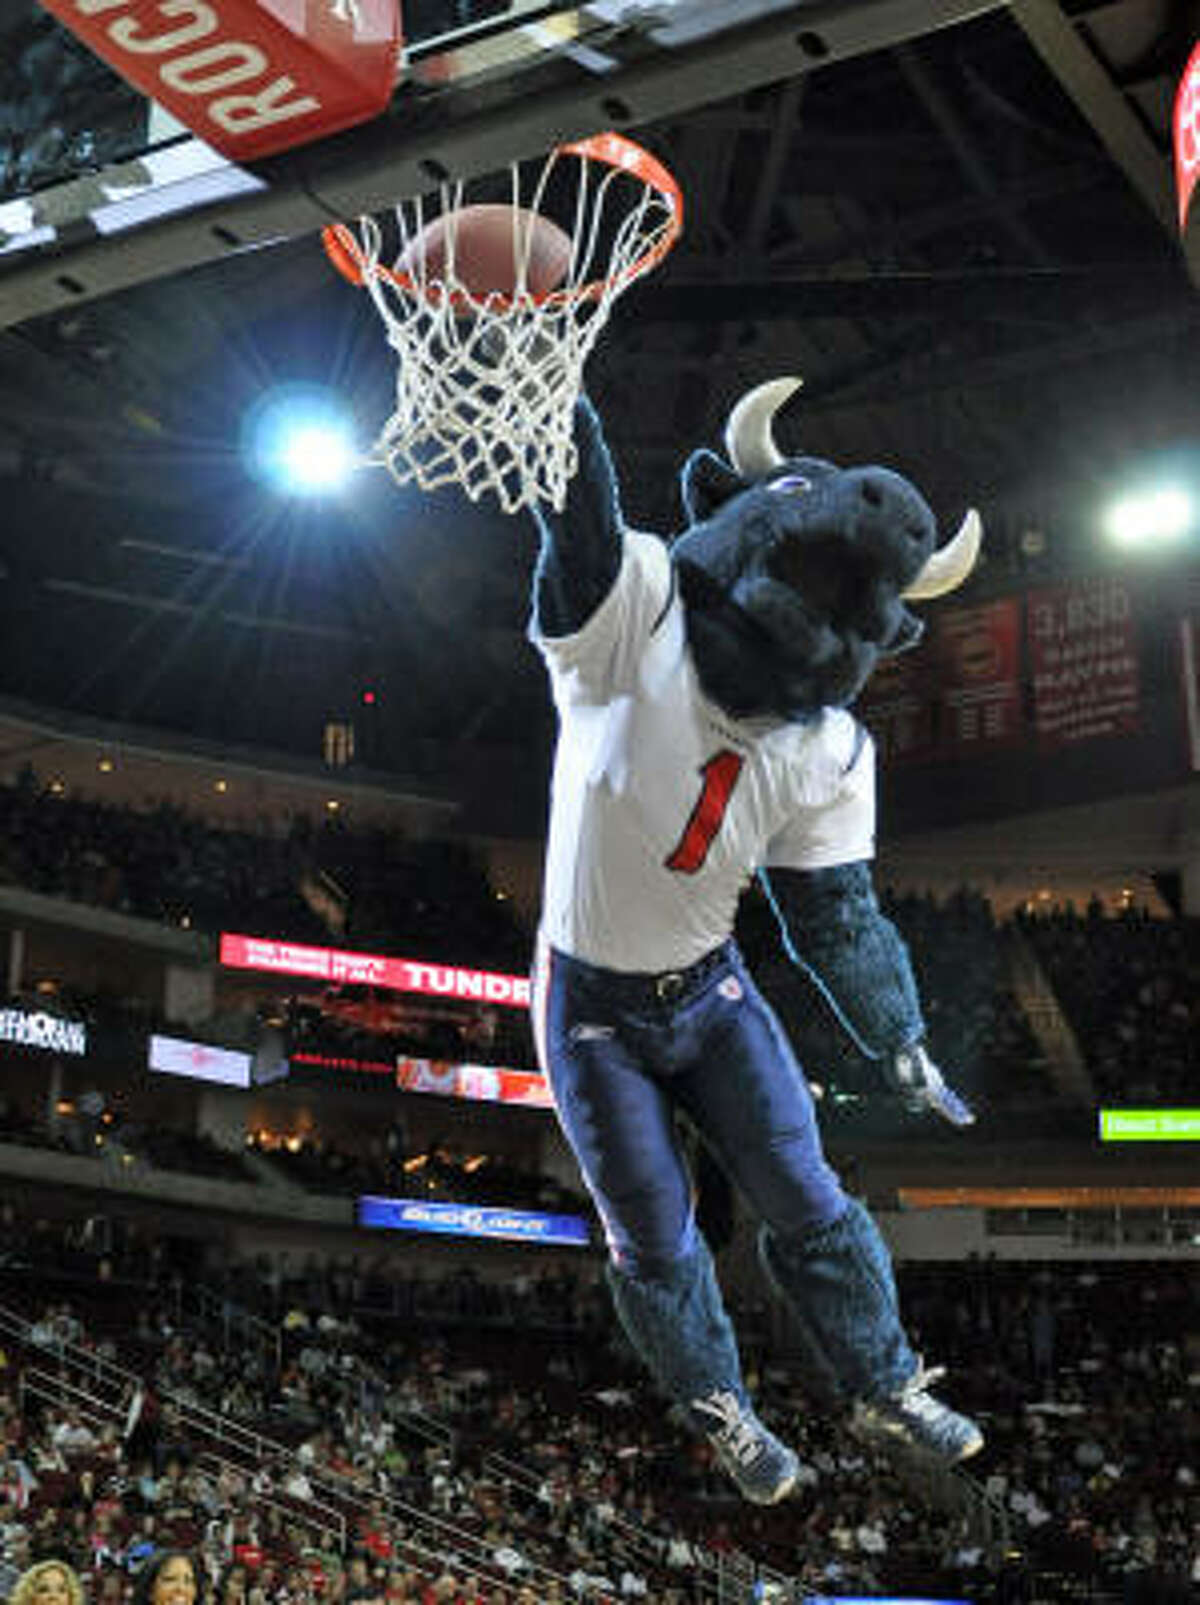 The Texans were represented as well. Here, mascot Toro dunks a football.